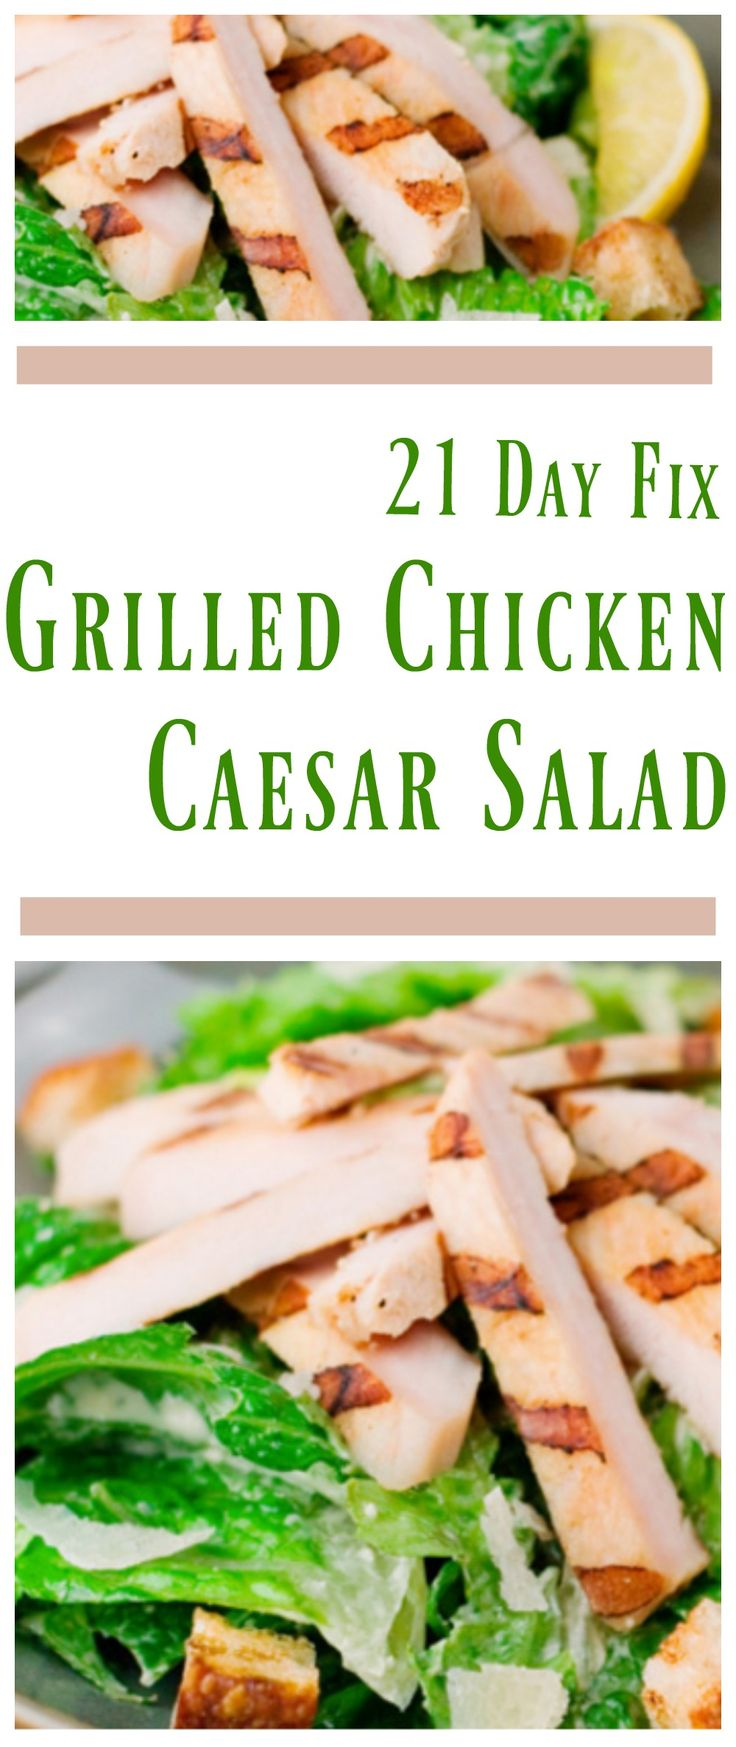 21 Day Fix Grilled Chicken Caesar Salad #21dayfix #21dayfixsalad…